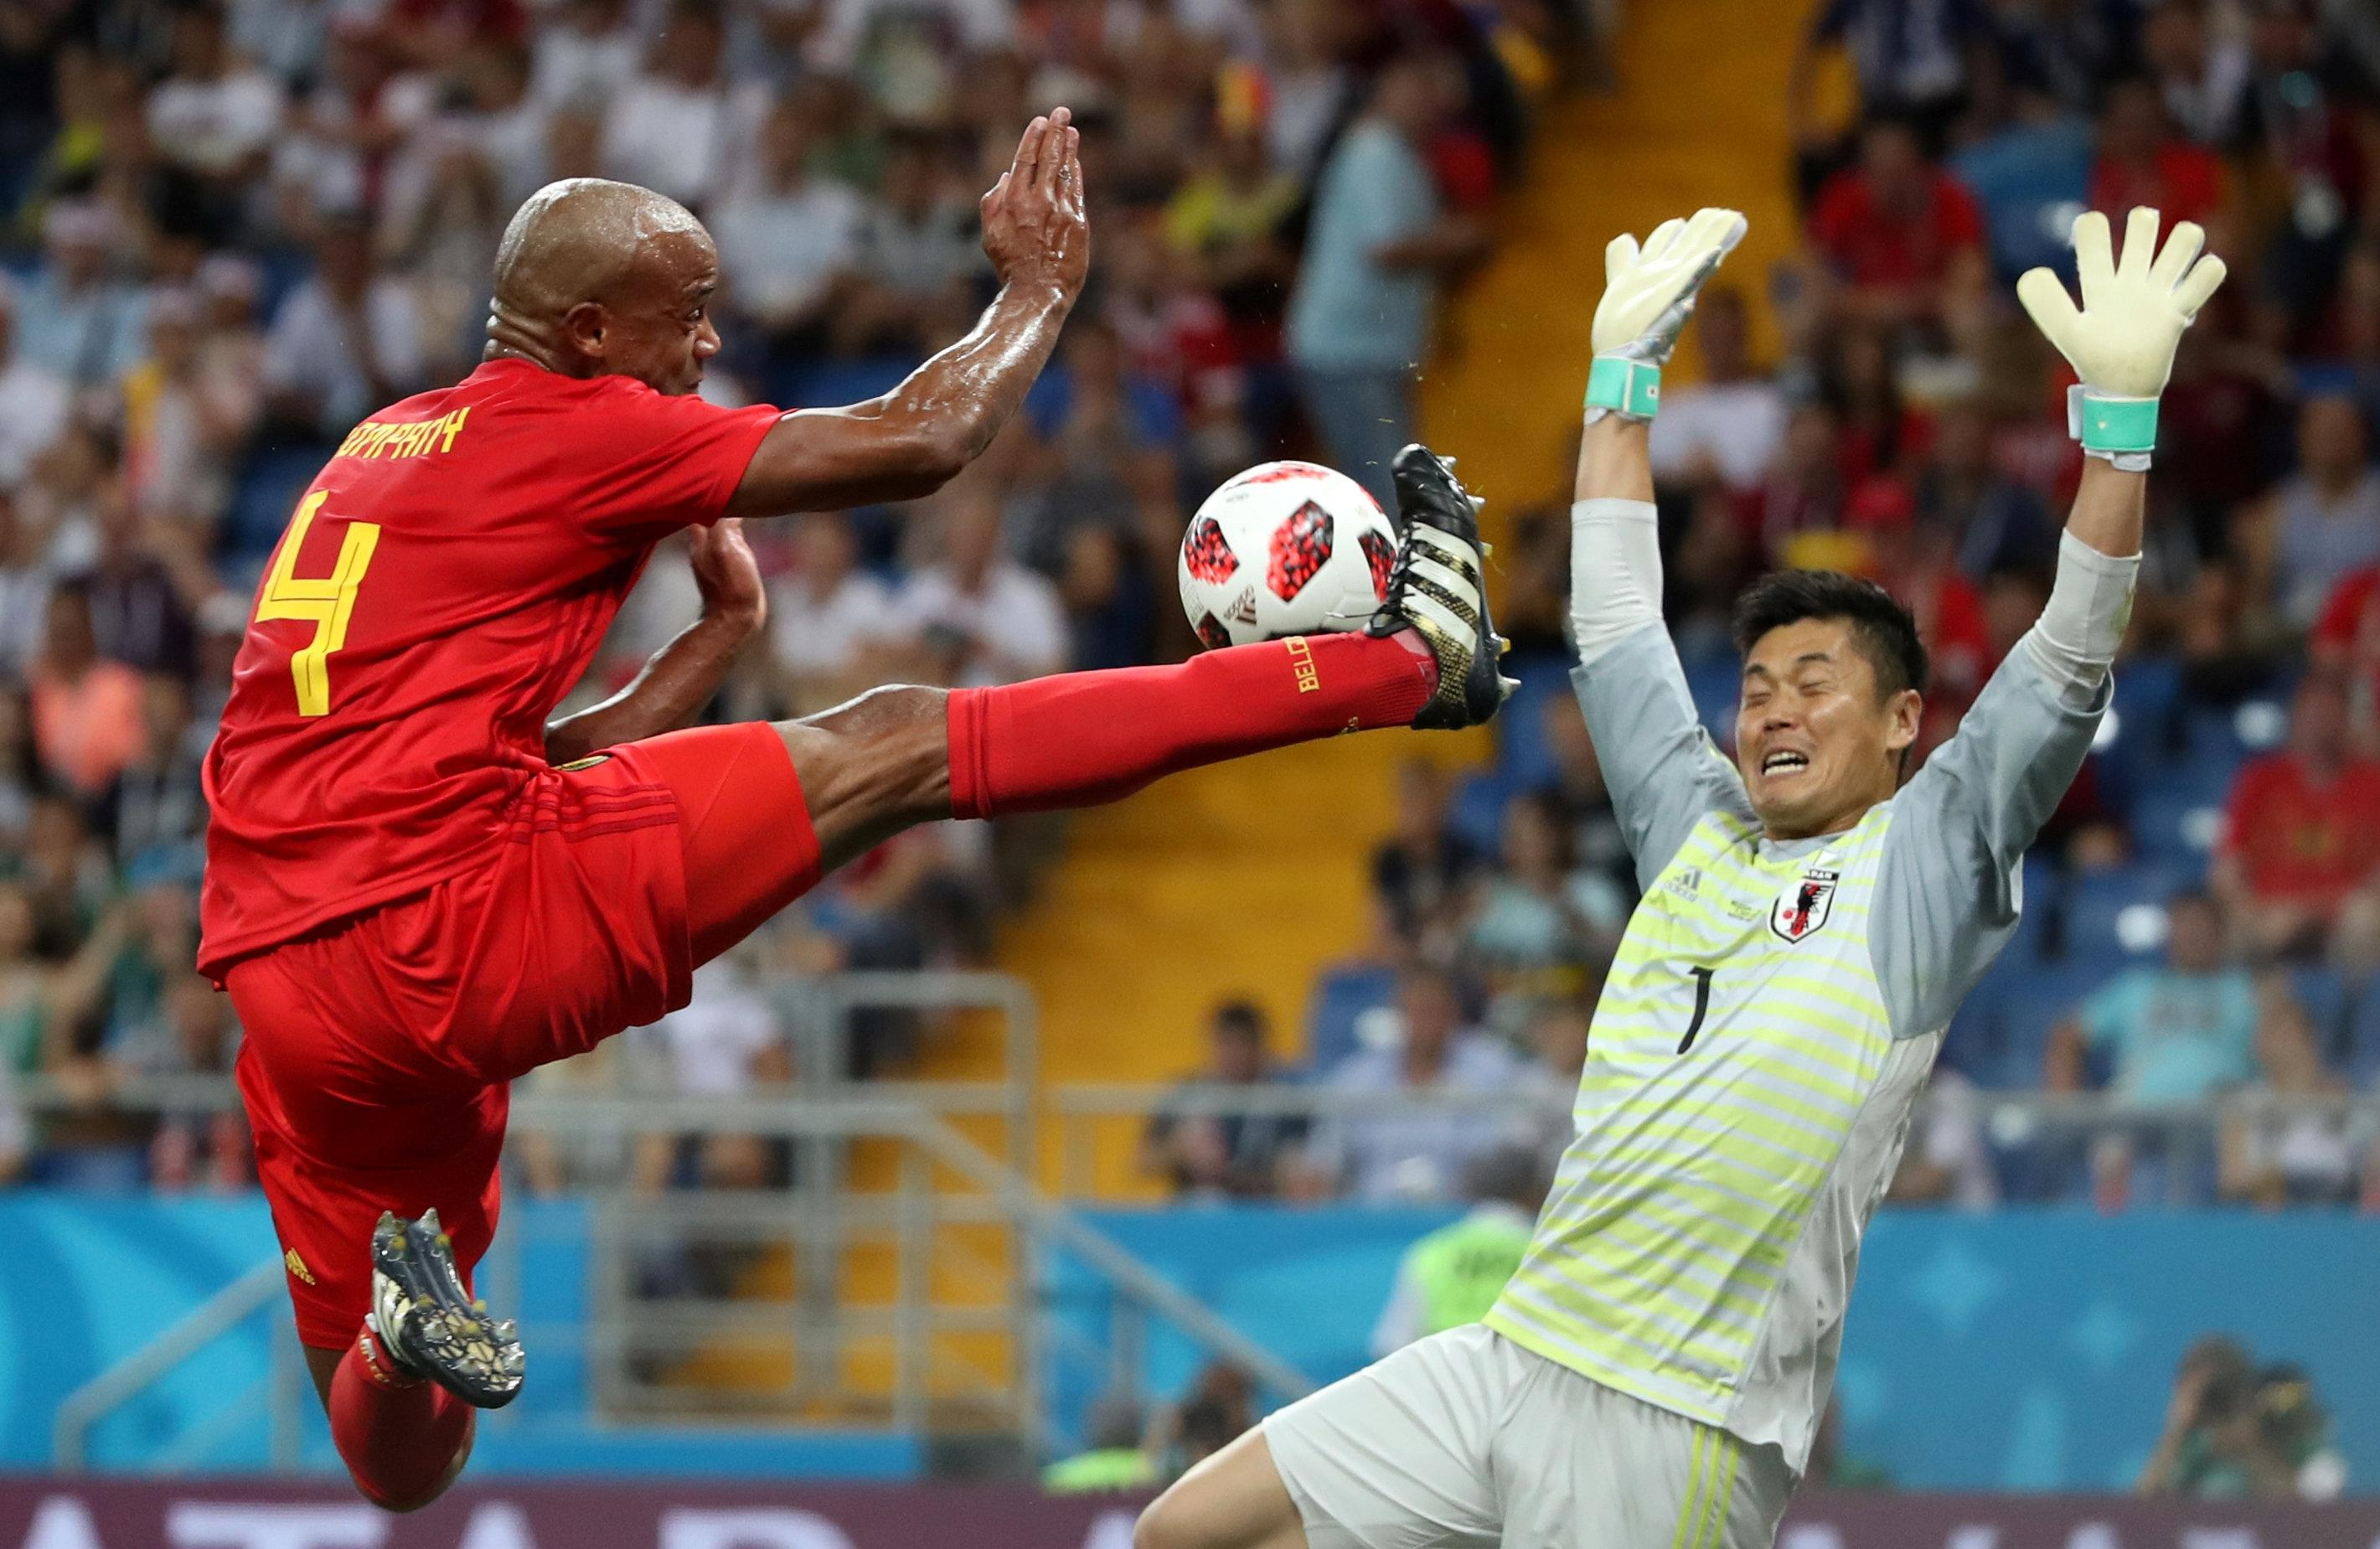 <p>Belgium's Vincent Kompany in action with Japan's Eiji Kawashima REUTERS/Marko Djurica </p>